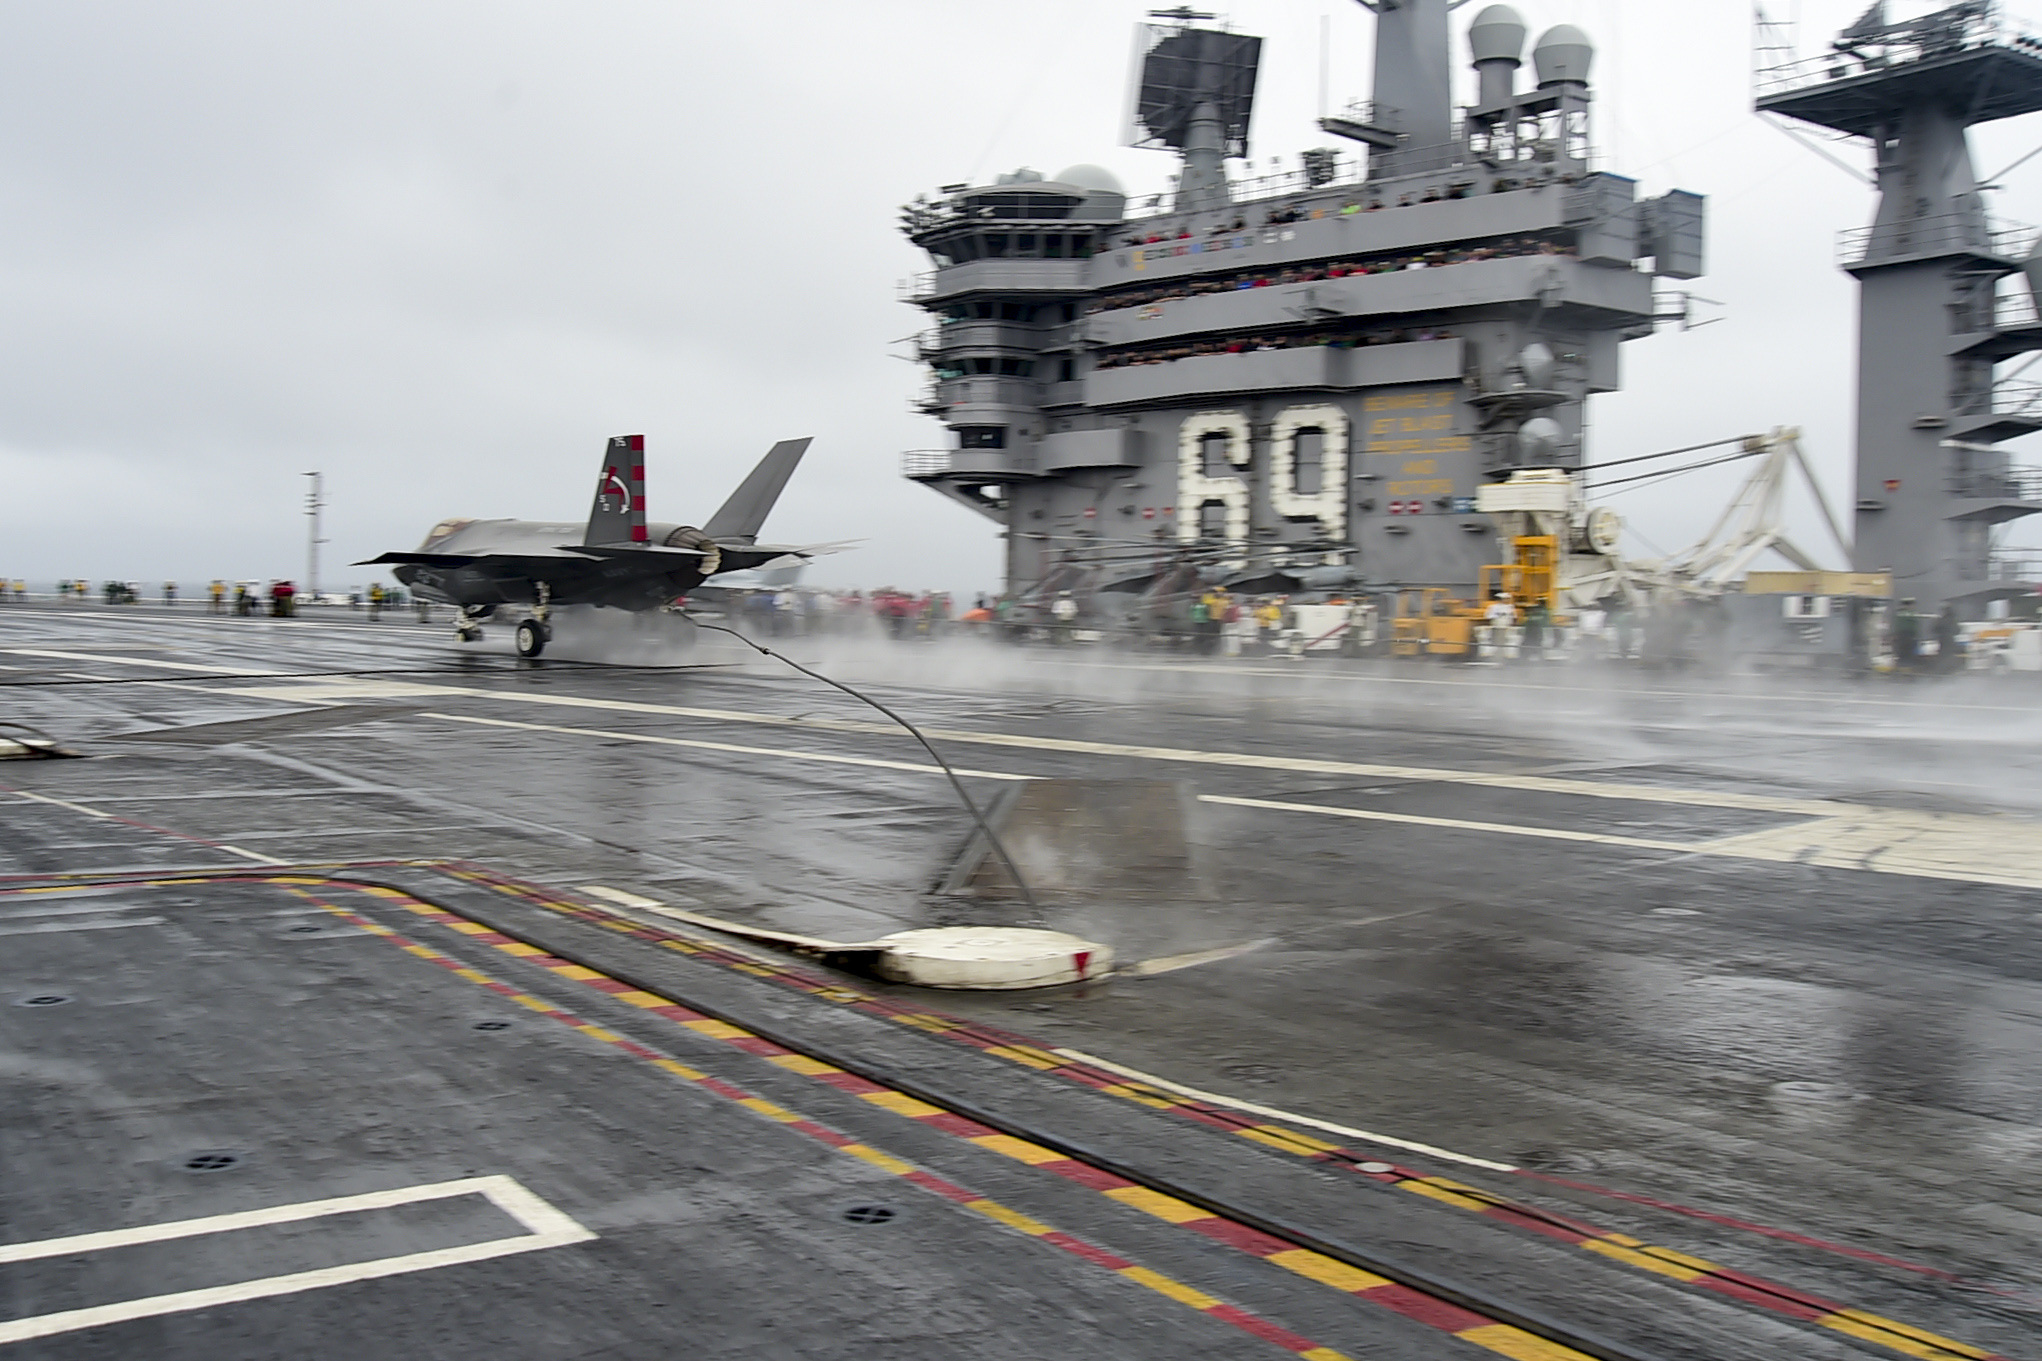 USS DWIGHT D. EISENHOWER CVN-69 am 03.10.2015 Bild: U.S. Navy